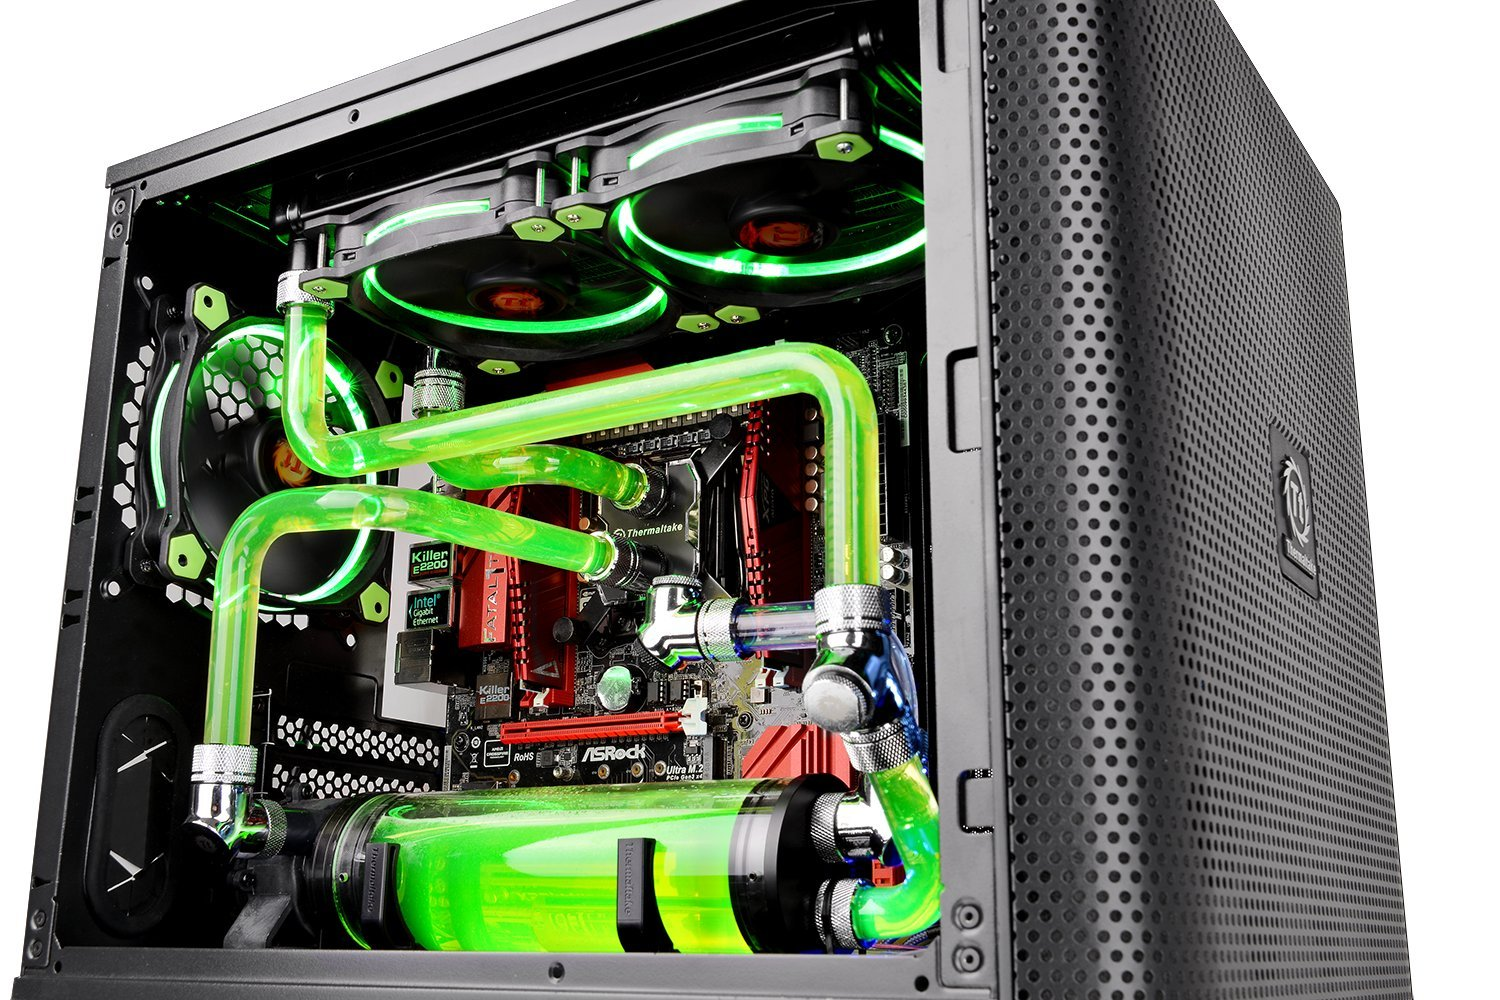 Thermaltake Core V21 SPCC Micro ATX, Mini ITX Cube Gaming Computer Case Chassis, Small Form Factor Builds, 200mm Front Fan Pre-installed, CA-1D5-00S1WN-00 by Thermaltake (Image #7)